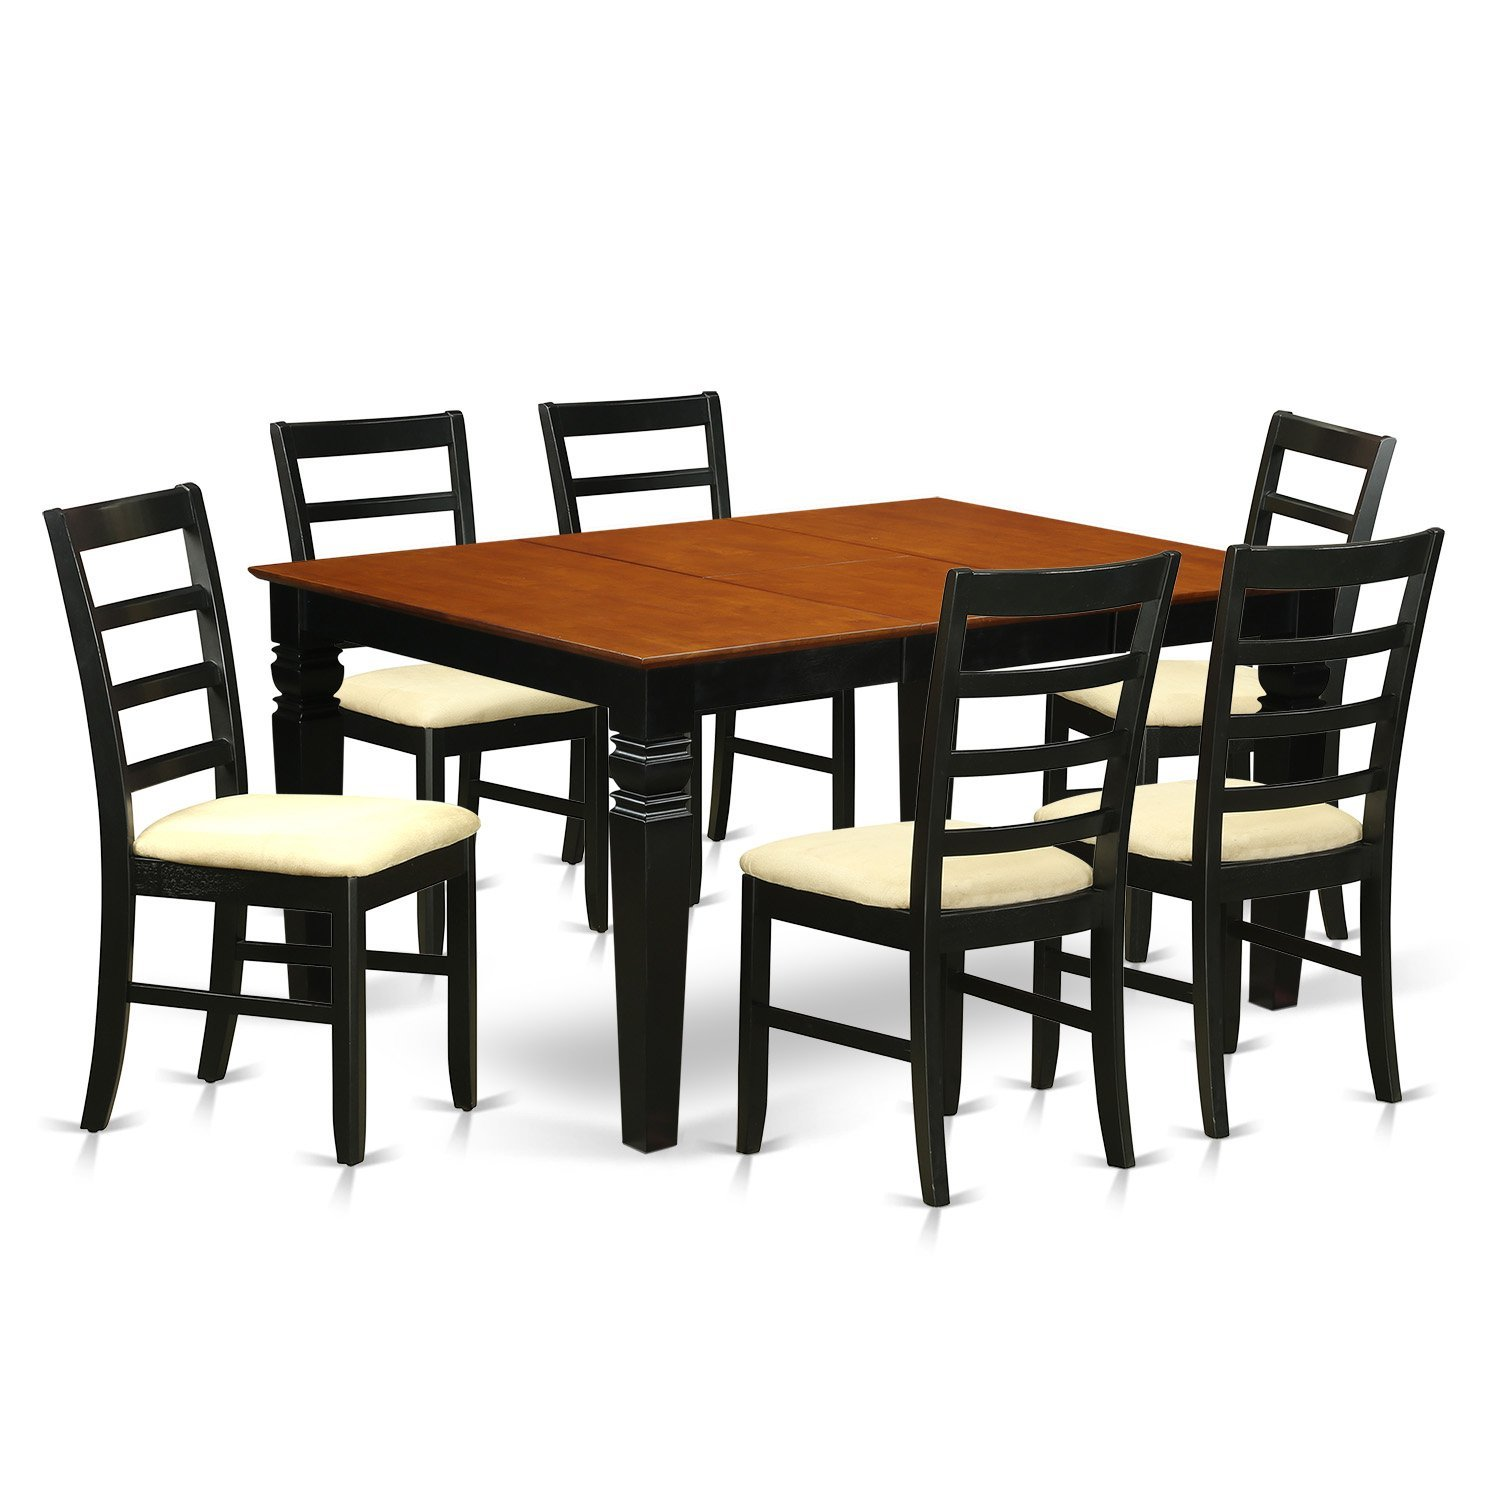 East West Furniture Weston WEPF7-BCH-C 7 Pc Dining Set with a Dinning Table and 6 Kitchen Chairs, Black